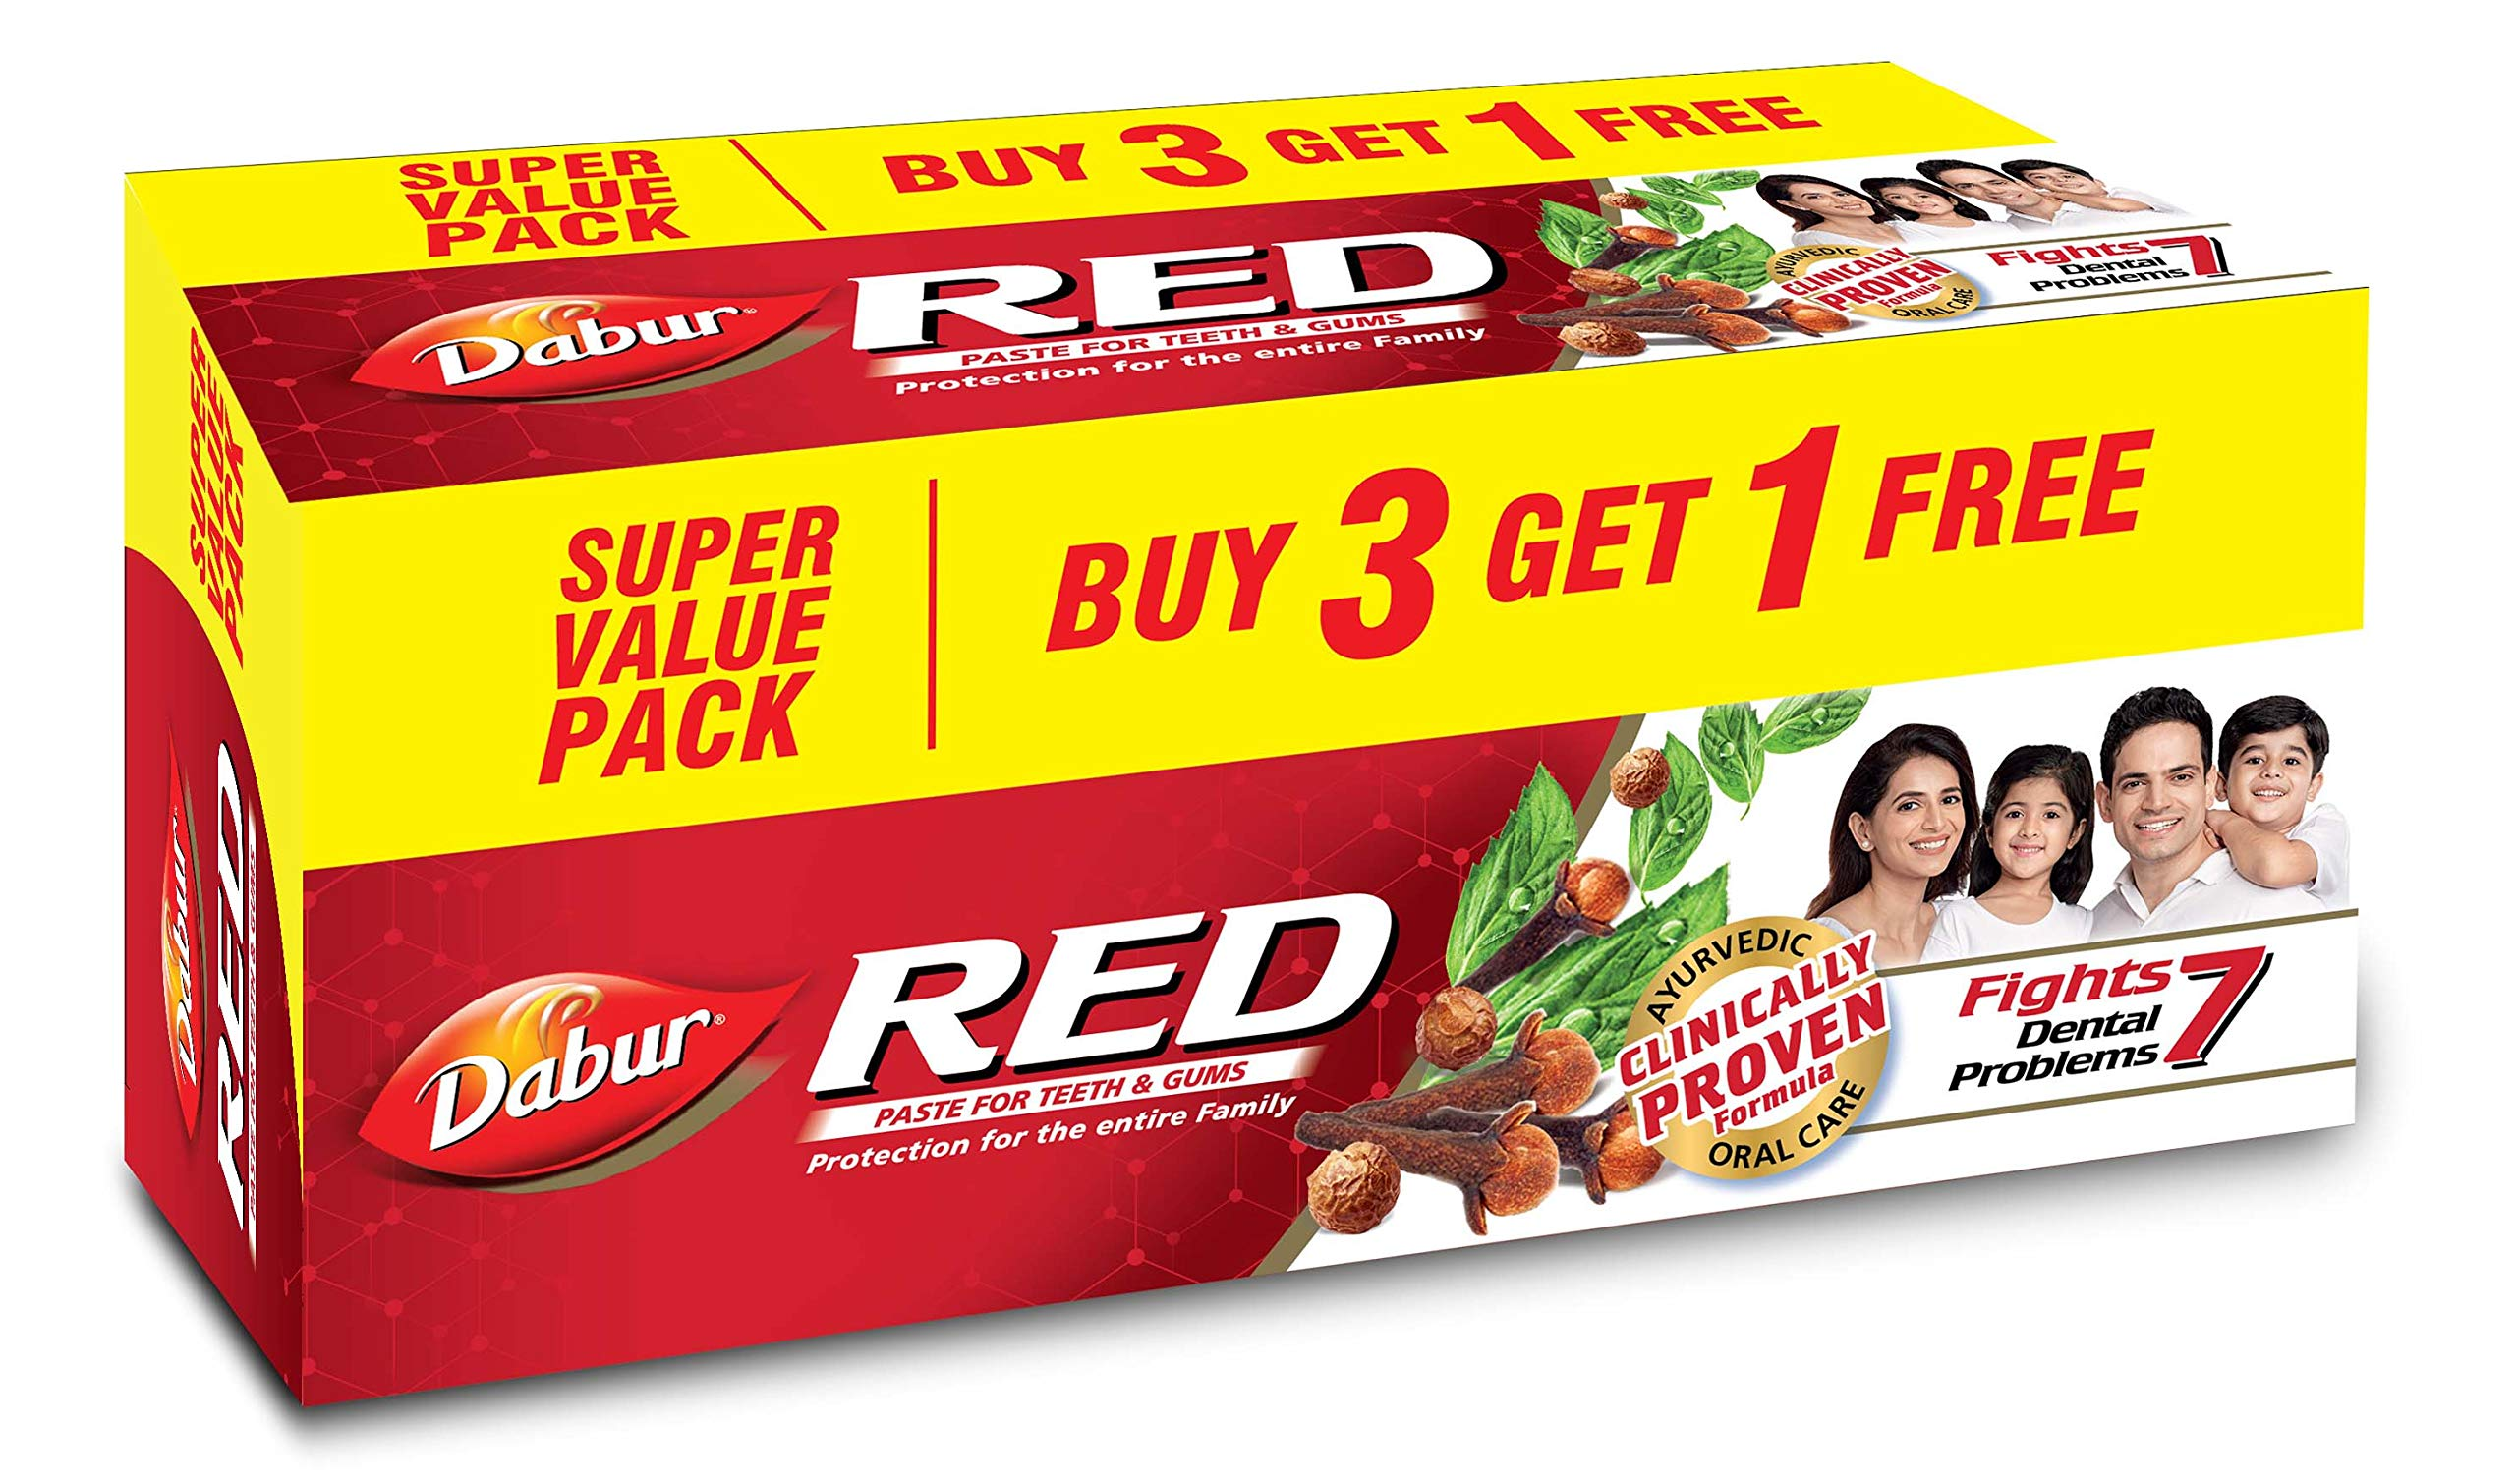 Dabur Red Paste, 800g (Buy 3 Get 1 Free)